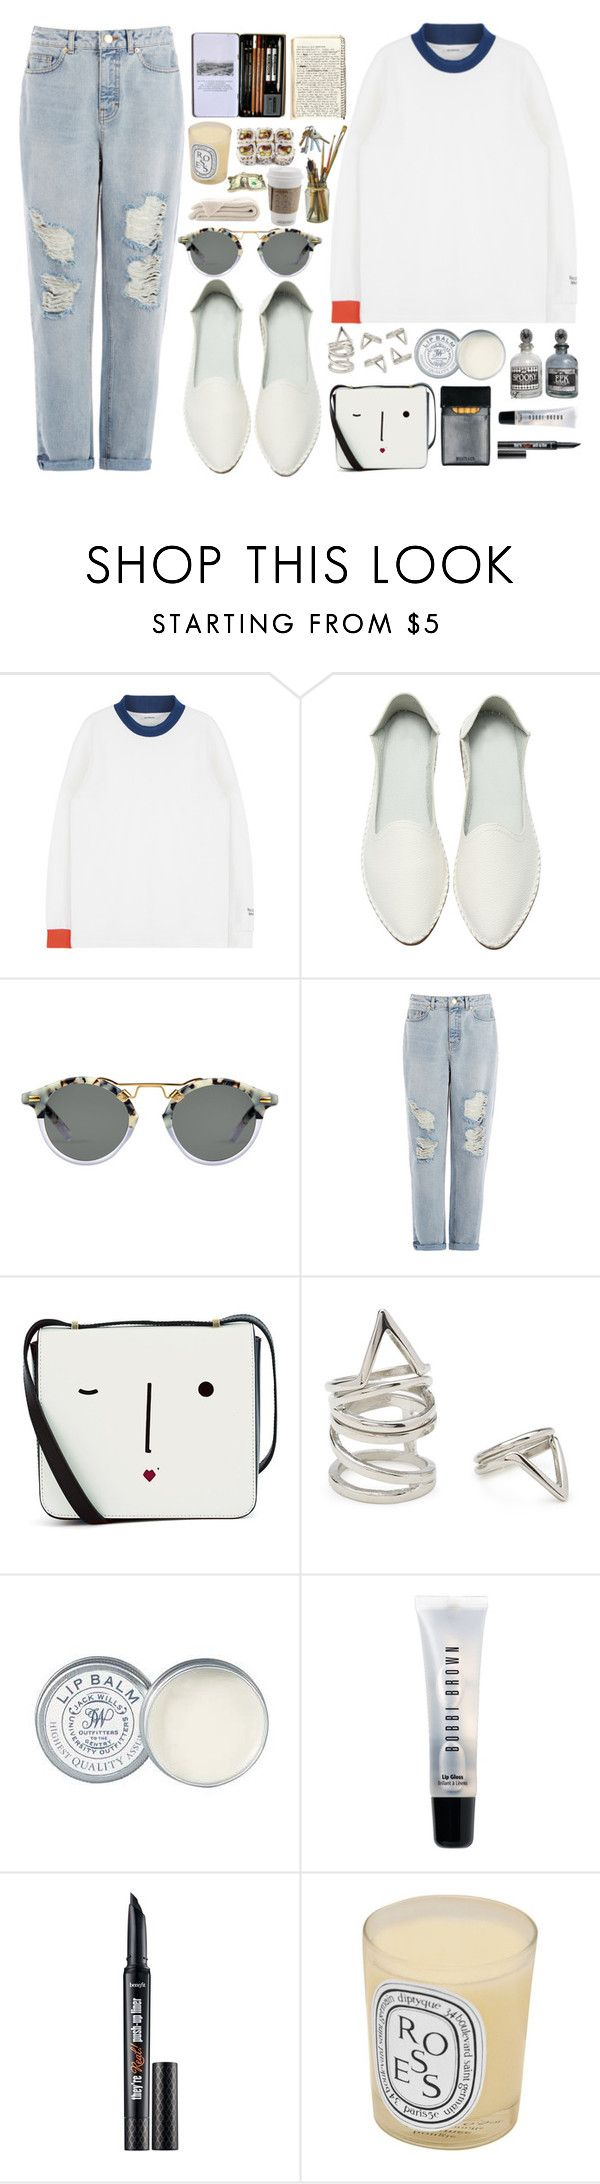 """""""College Kid"""" by finding-0riginality ❤ liked on Polyvore featuring Warehouse, Lulu Guinness, Forever 21, Jack Wills, Bobbi Brown Cosmetics, Benefit and Diptyque"""